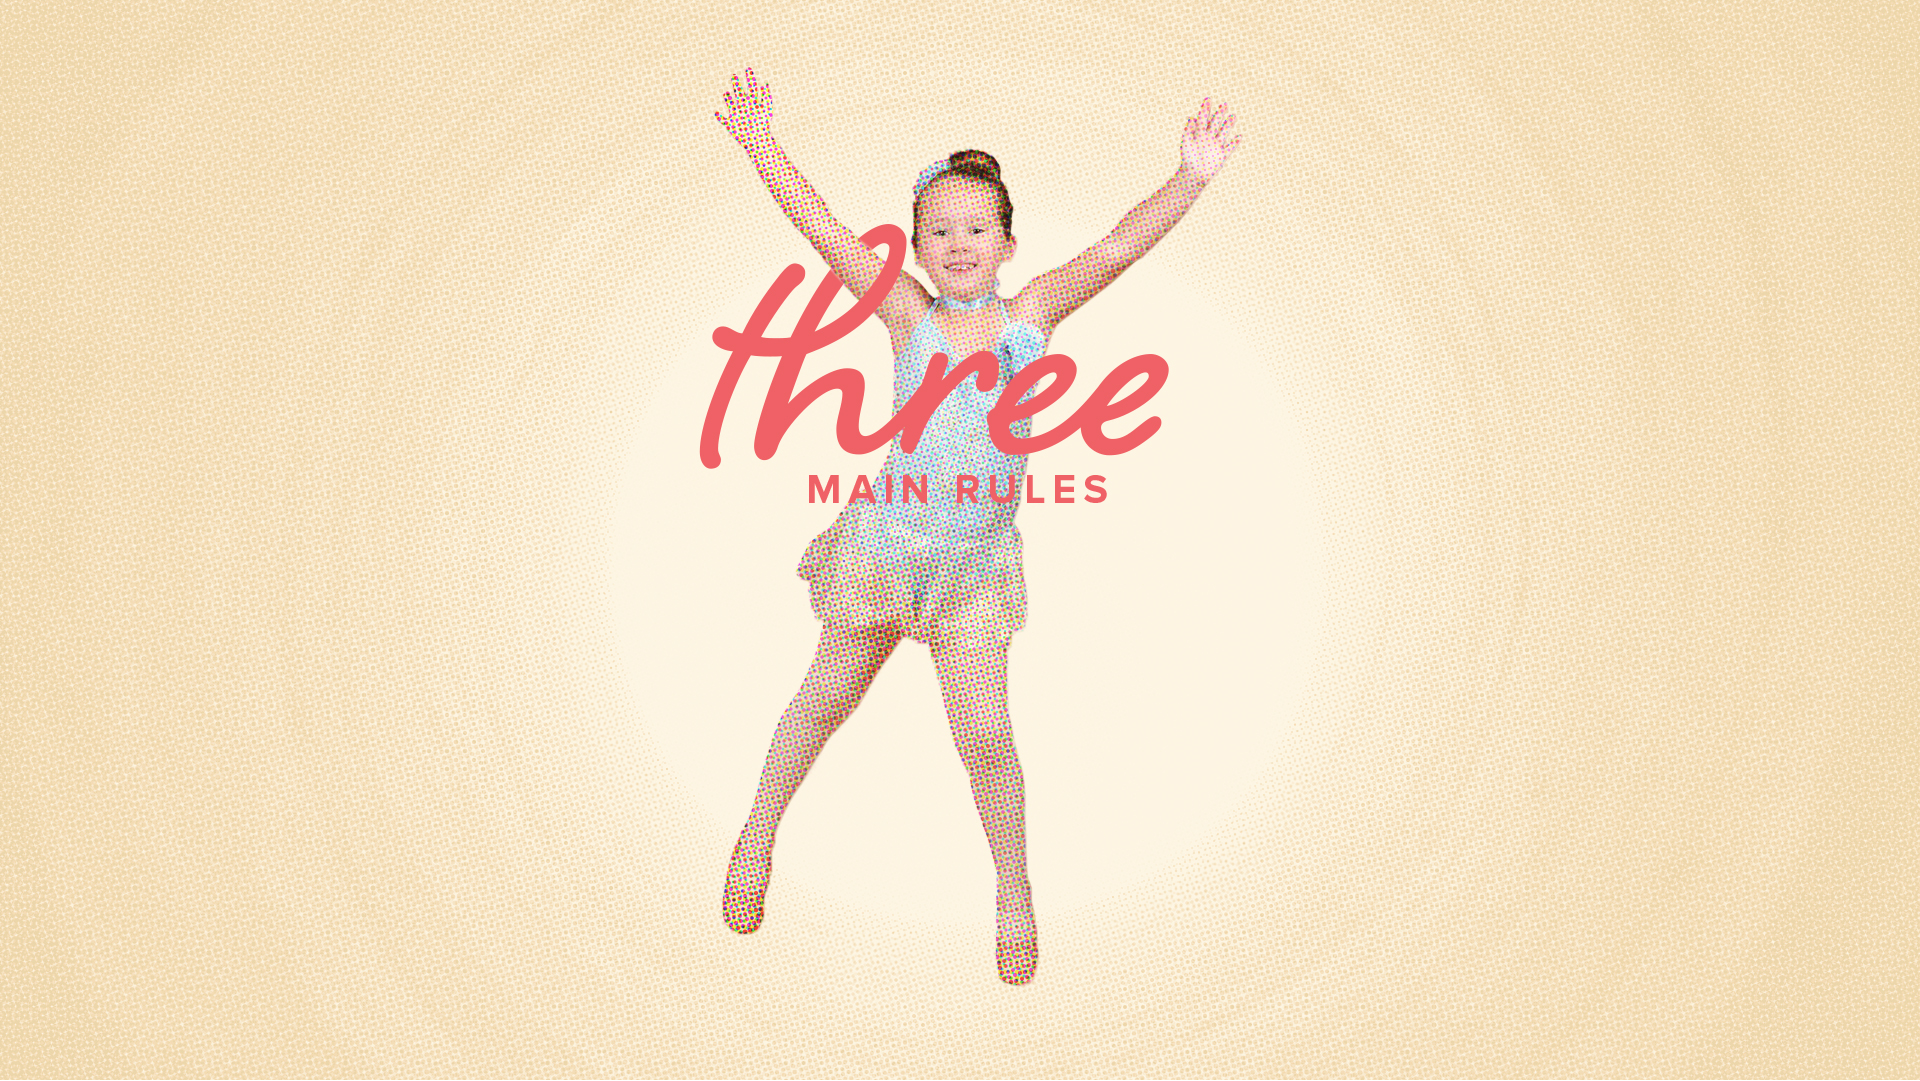 Three Main Rules for Jumping